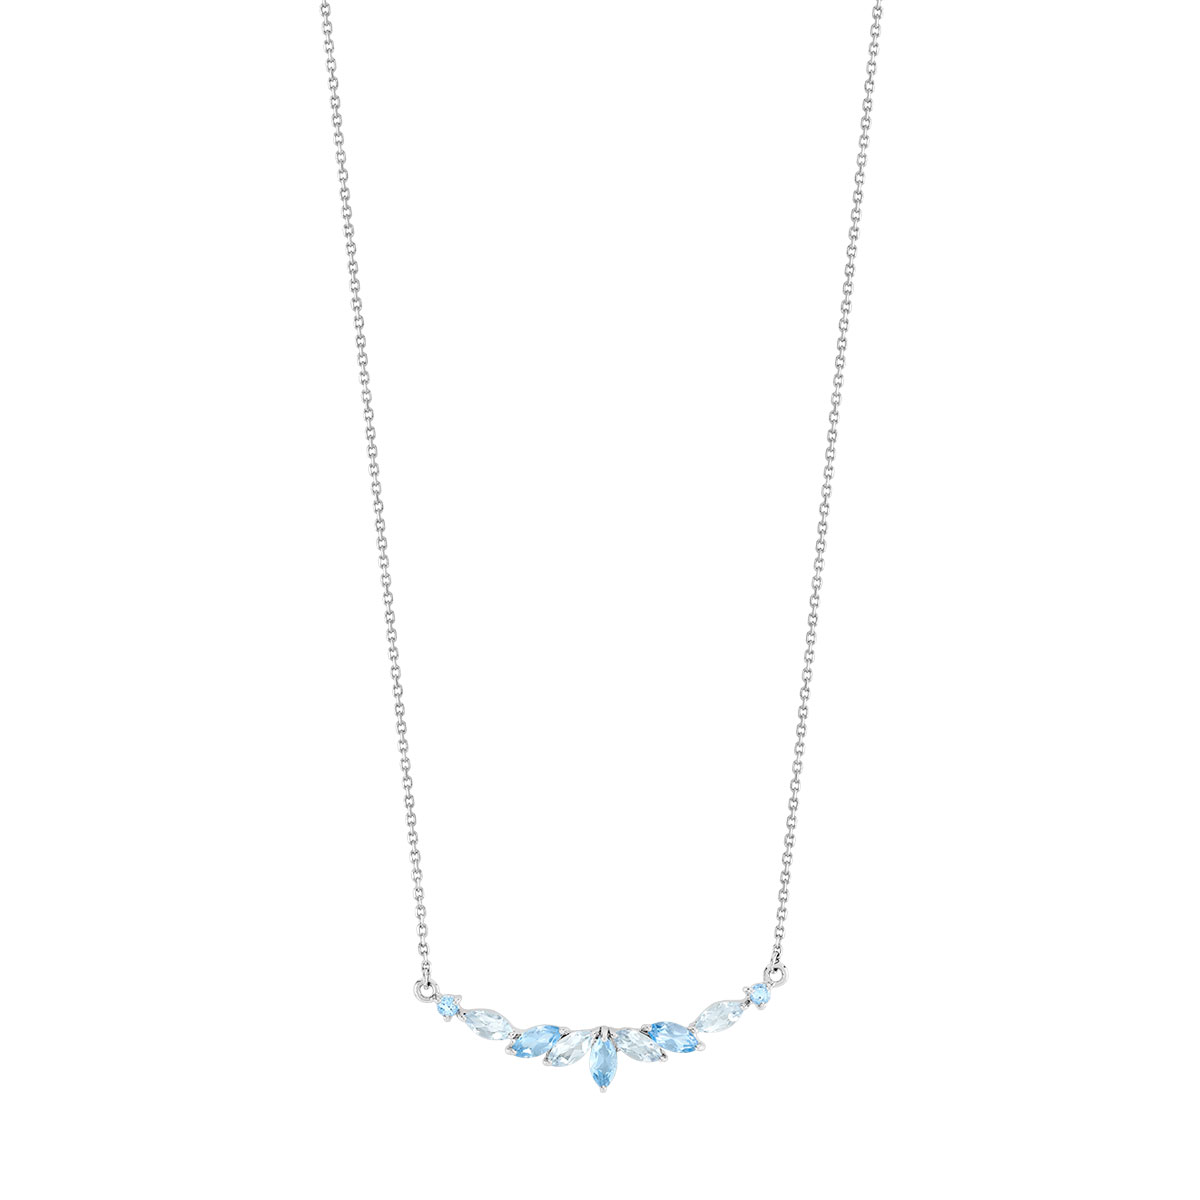 Collier or 375 blanc topaze bleue traitée - vue V1